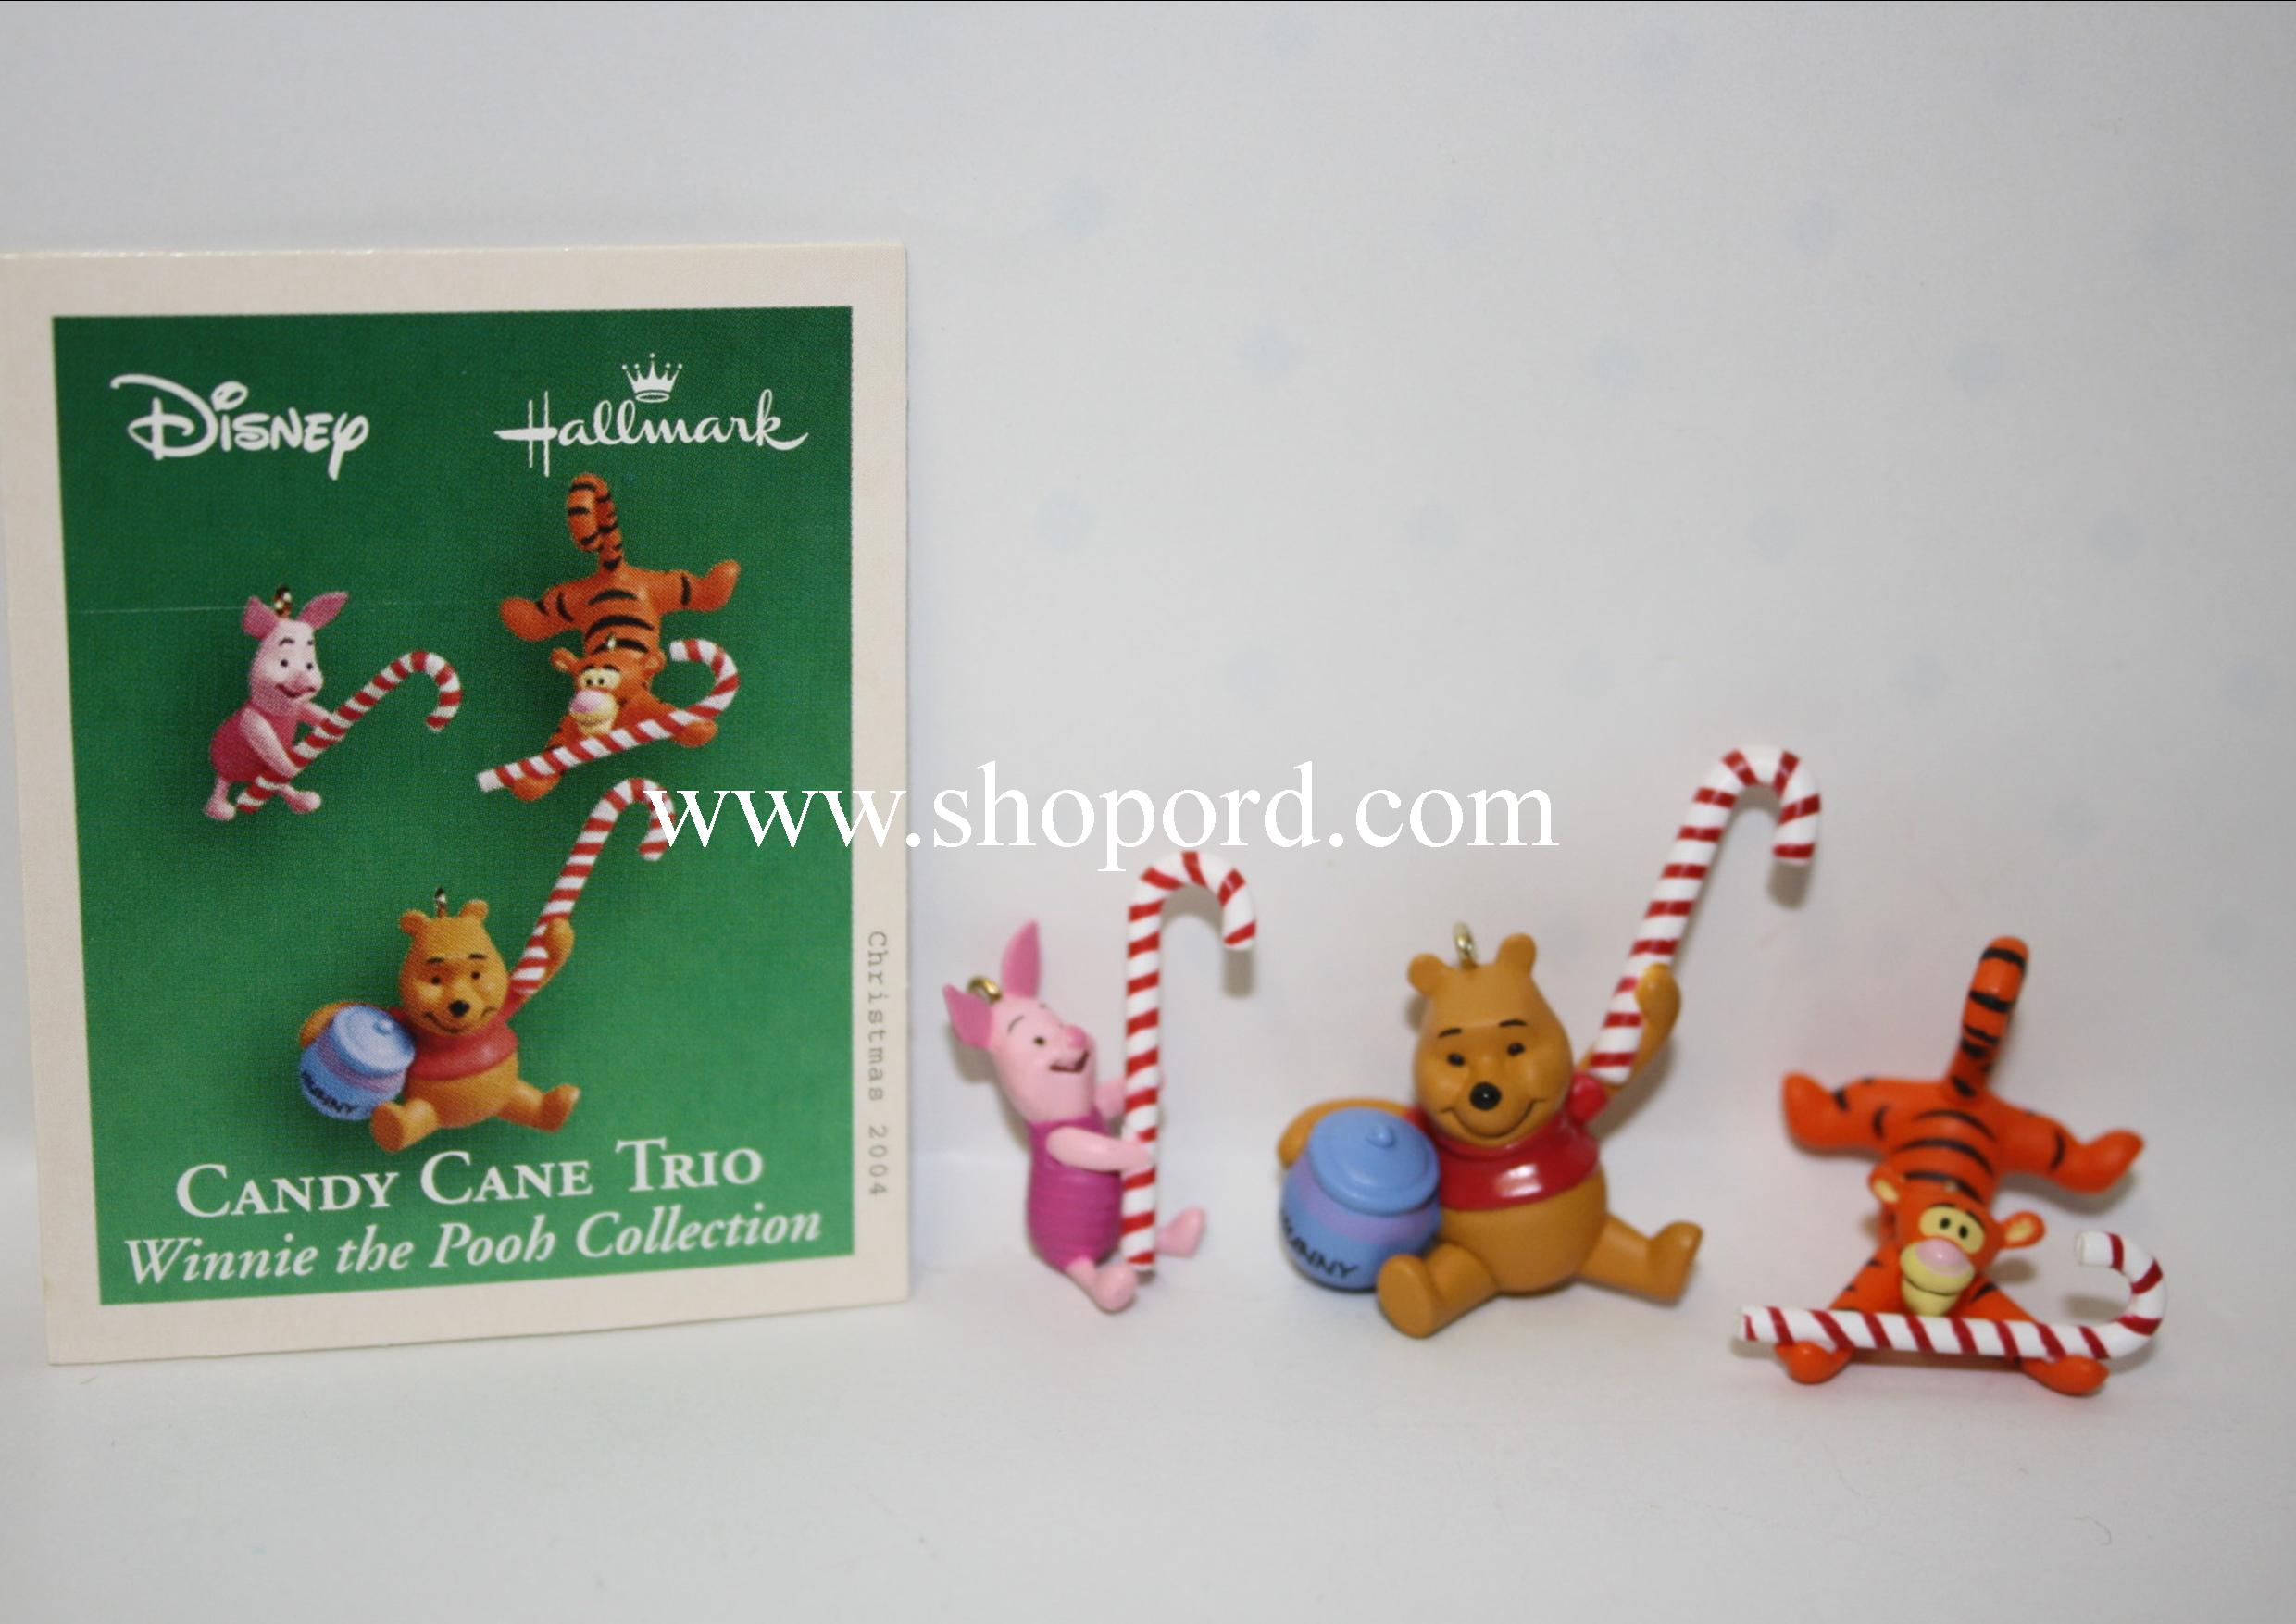 Hallmark 2004 Candy Cane Trio Disney Winnie the Pooh Collection set of 3 Miniature Ornament QXM5114